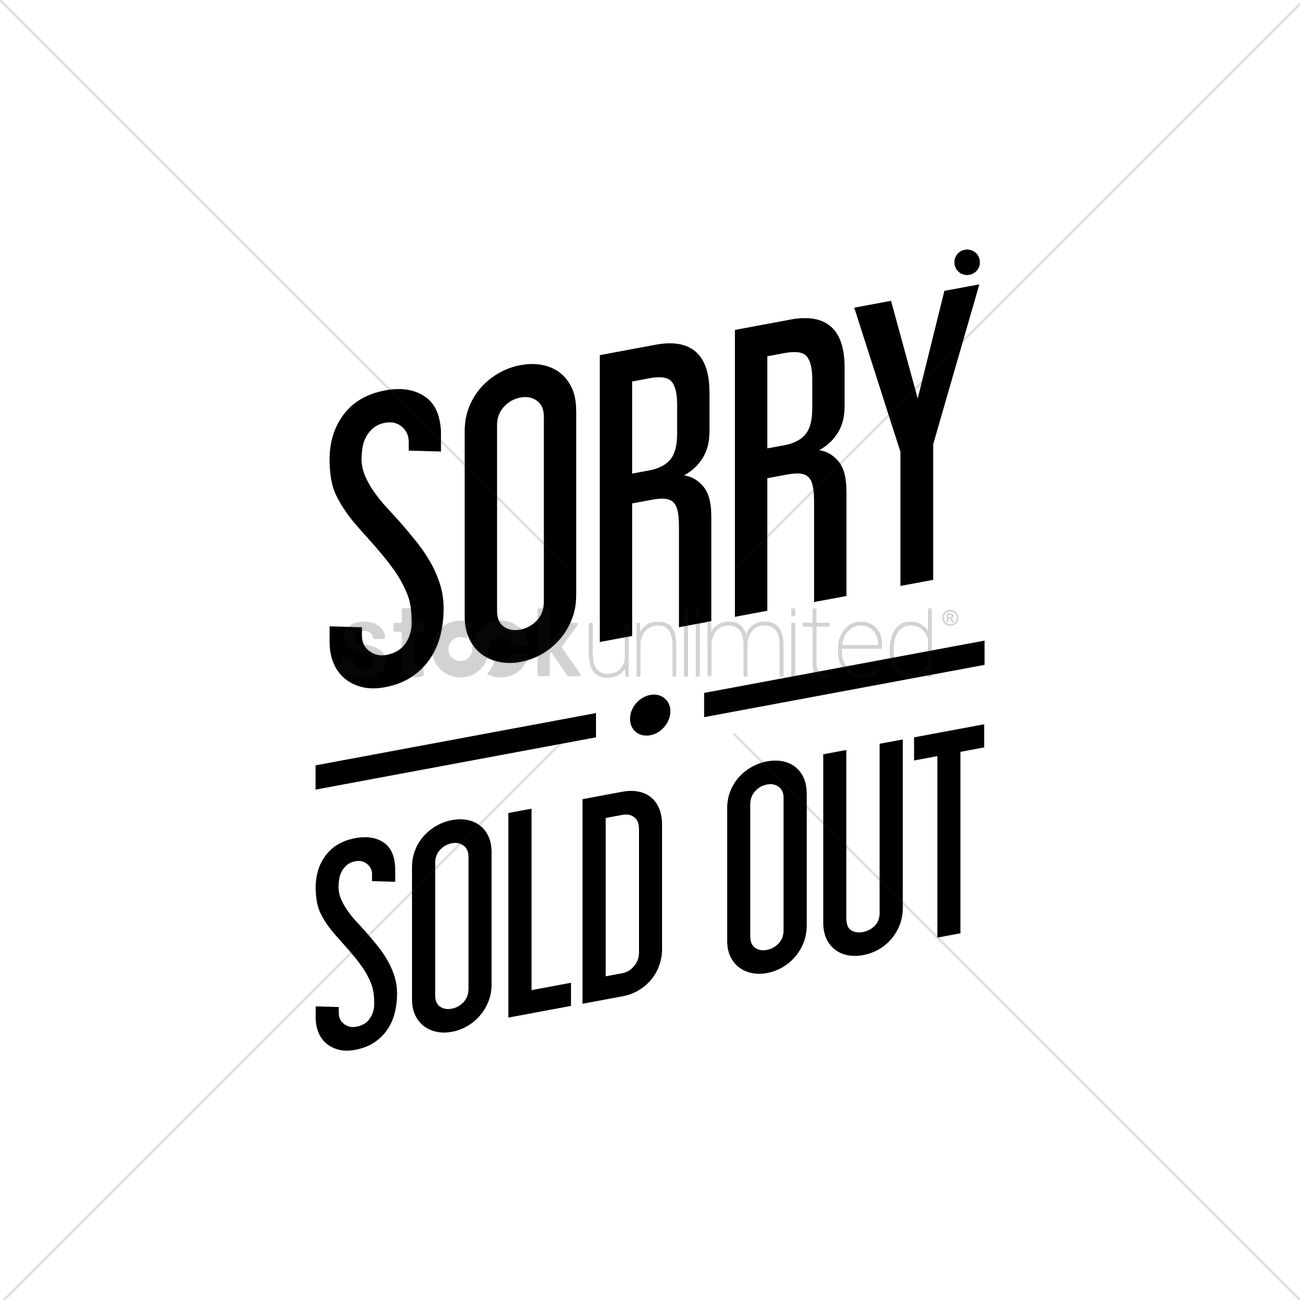 sorry sold out text vector image 1520933 stockunlimited rh stockunlimited com sony logon sony logon